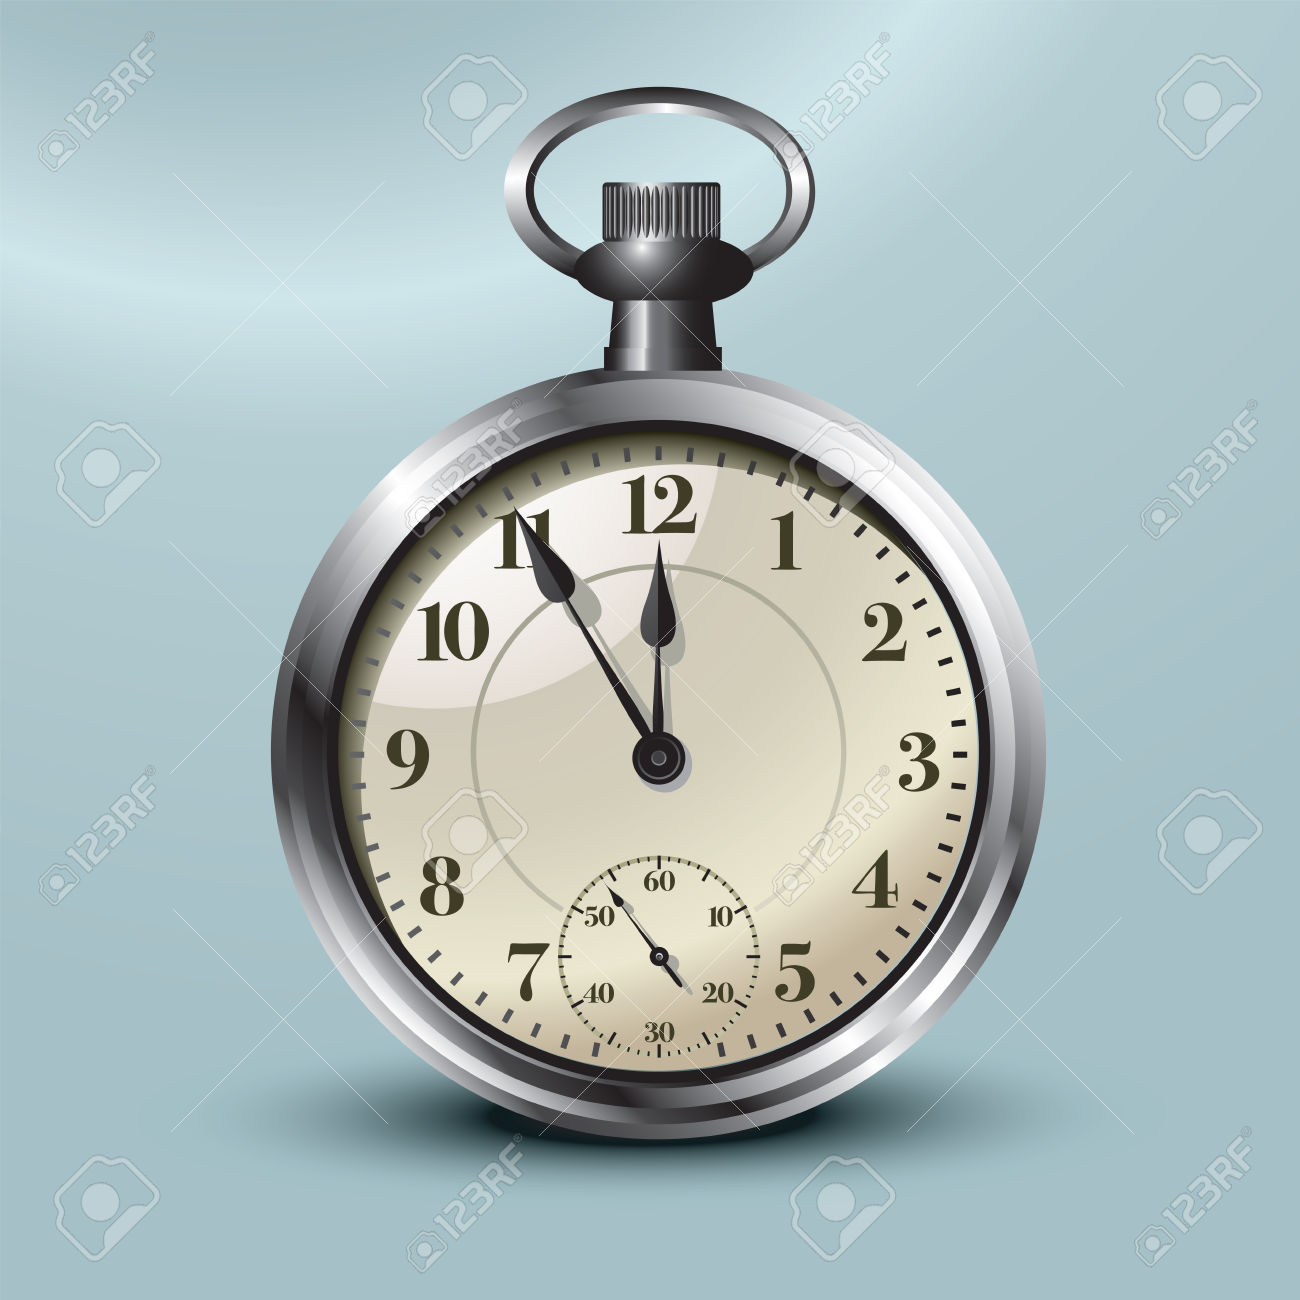 Pocket Watch Showing Five Minutes To Midnight Vector Illustration.